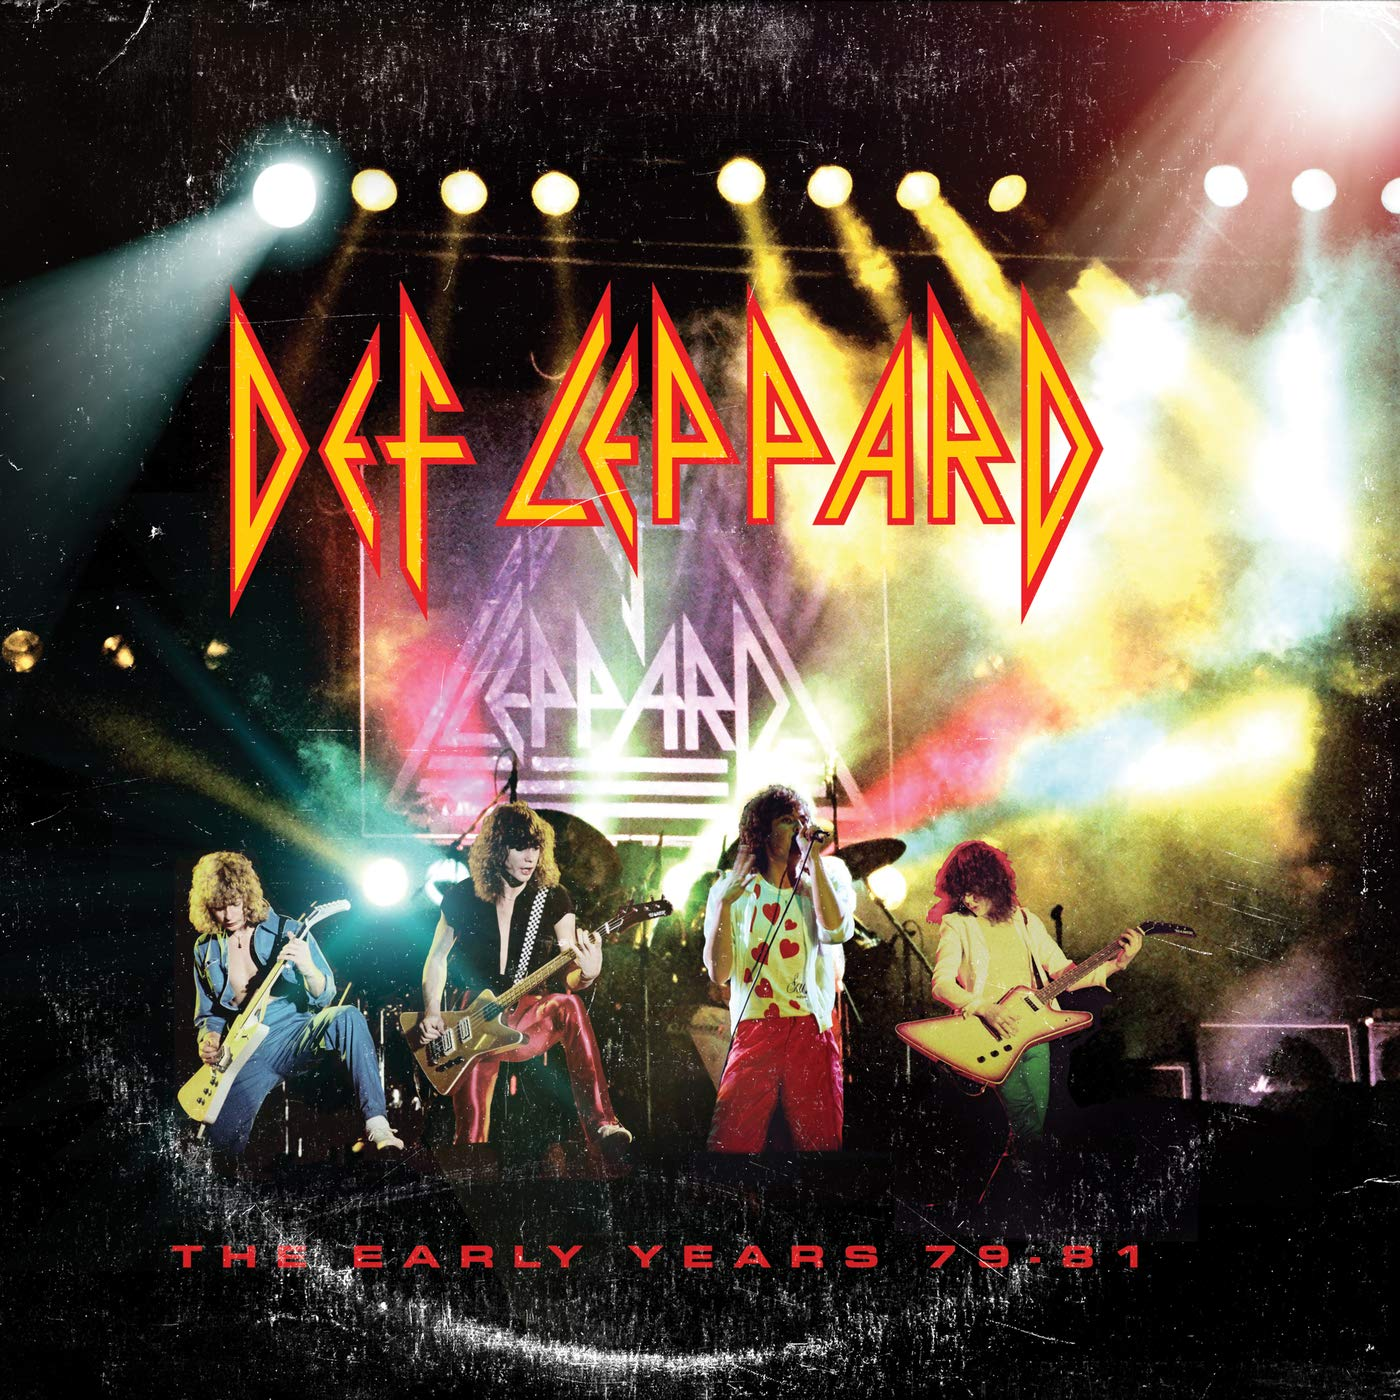 Def Leppard-The Early Years 79-81-(6731408)-BOXSET-5CD-FLAC-2020-WRE